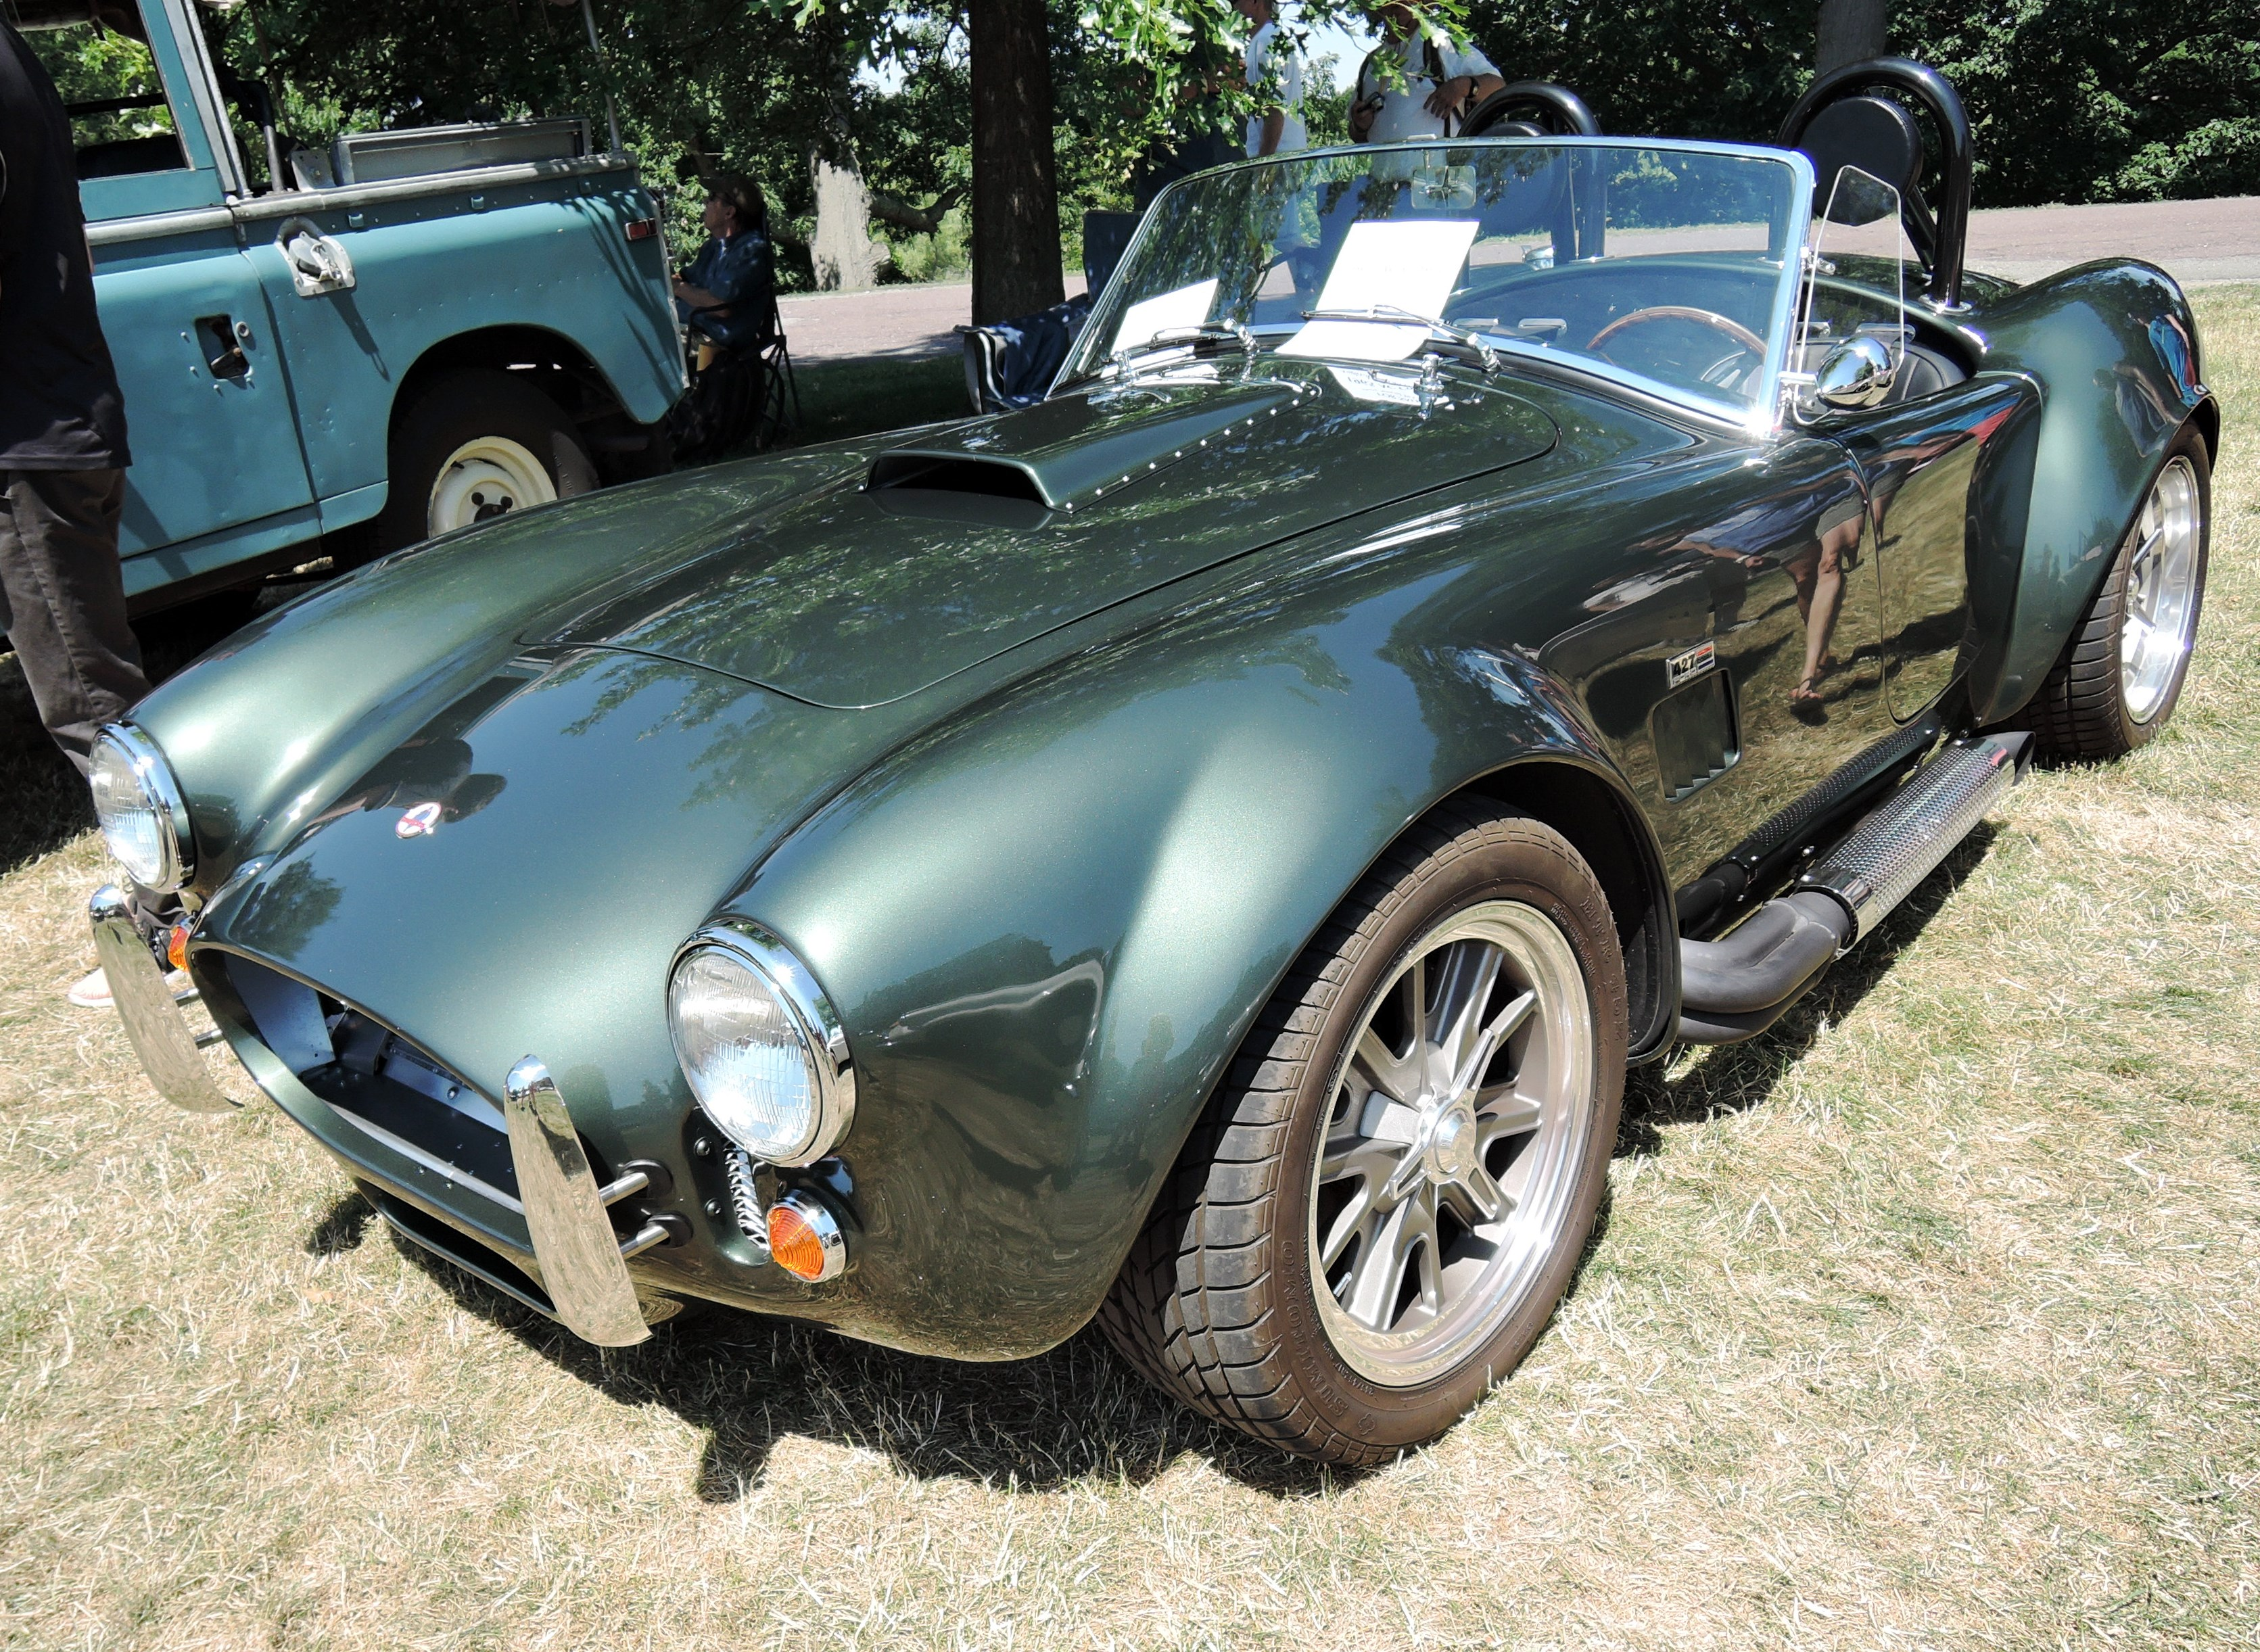 green 1965 AC Cobra - british car day